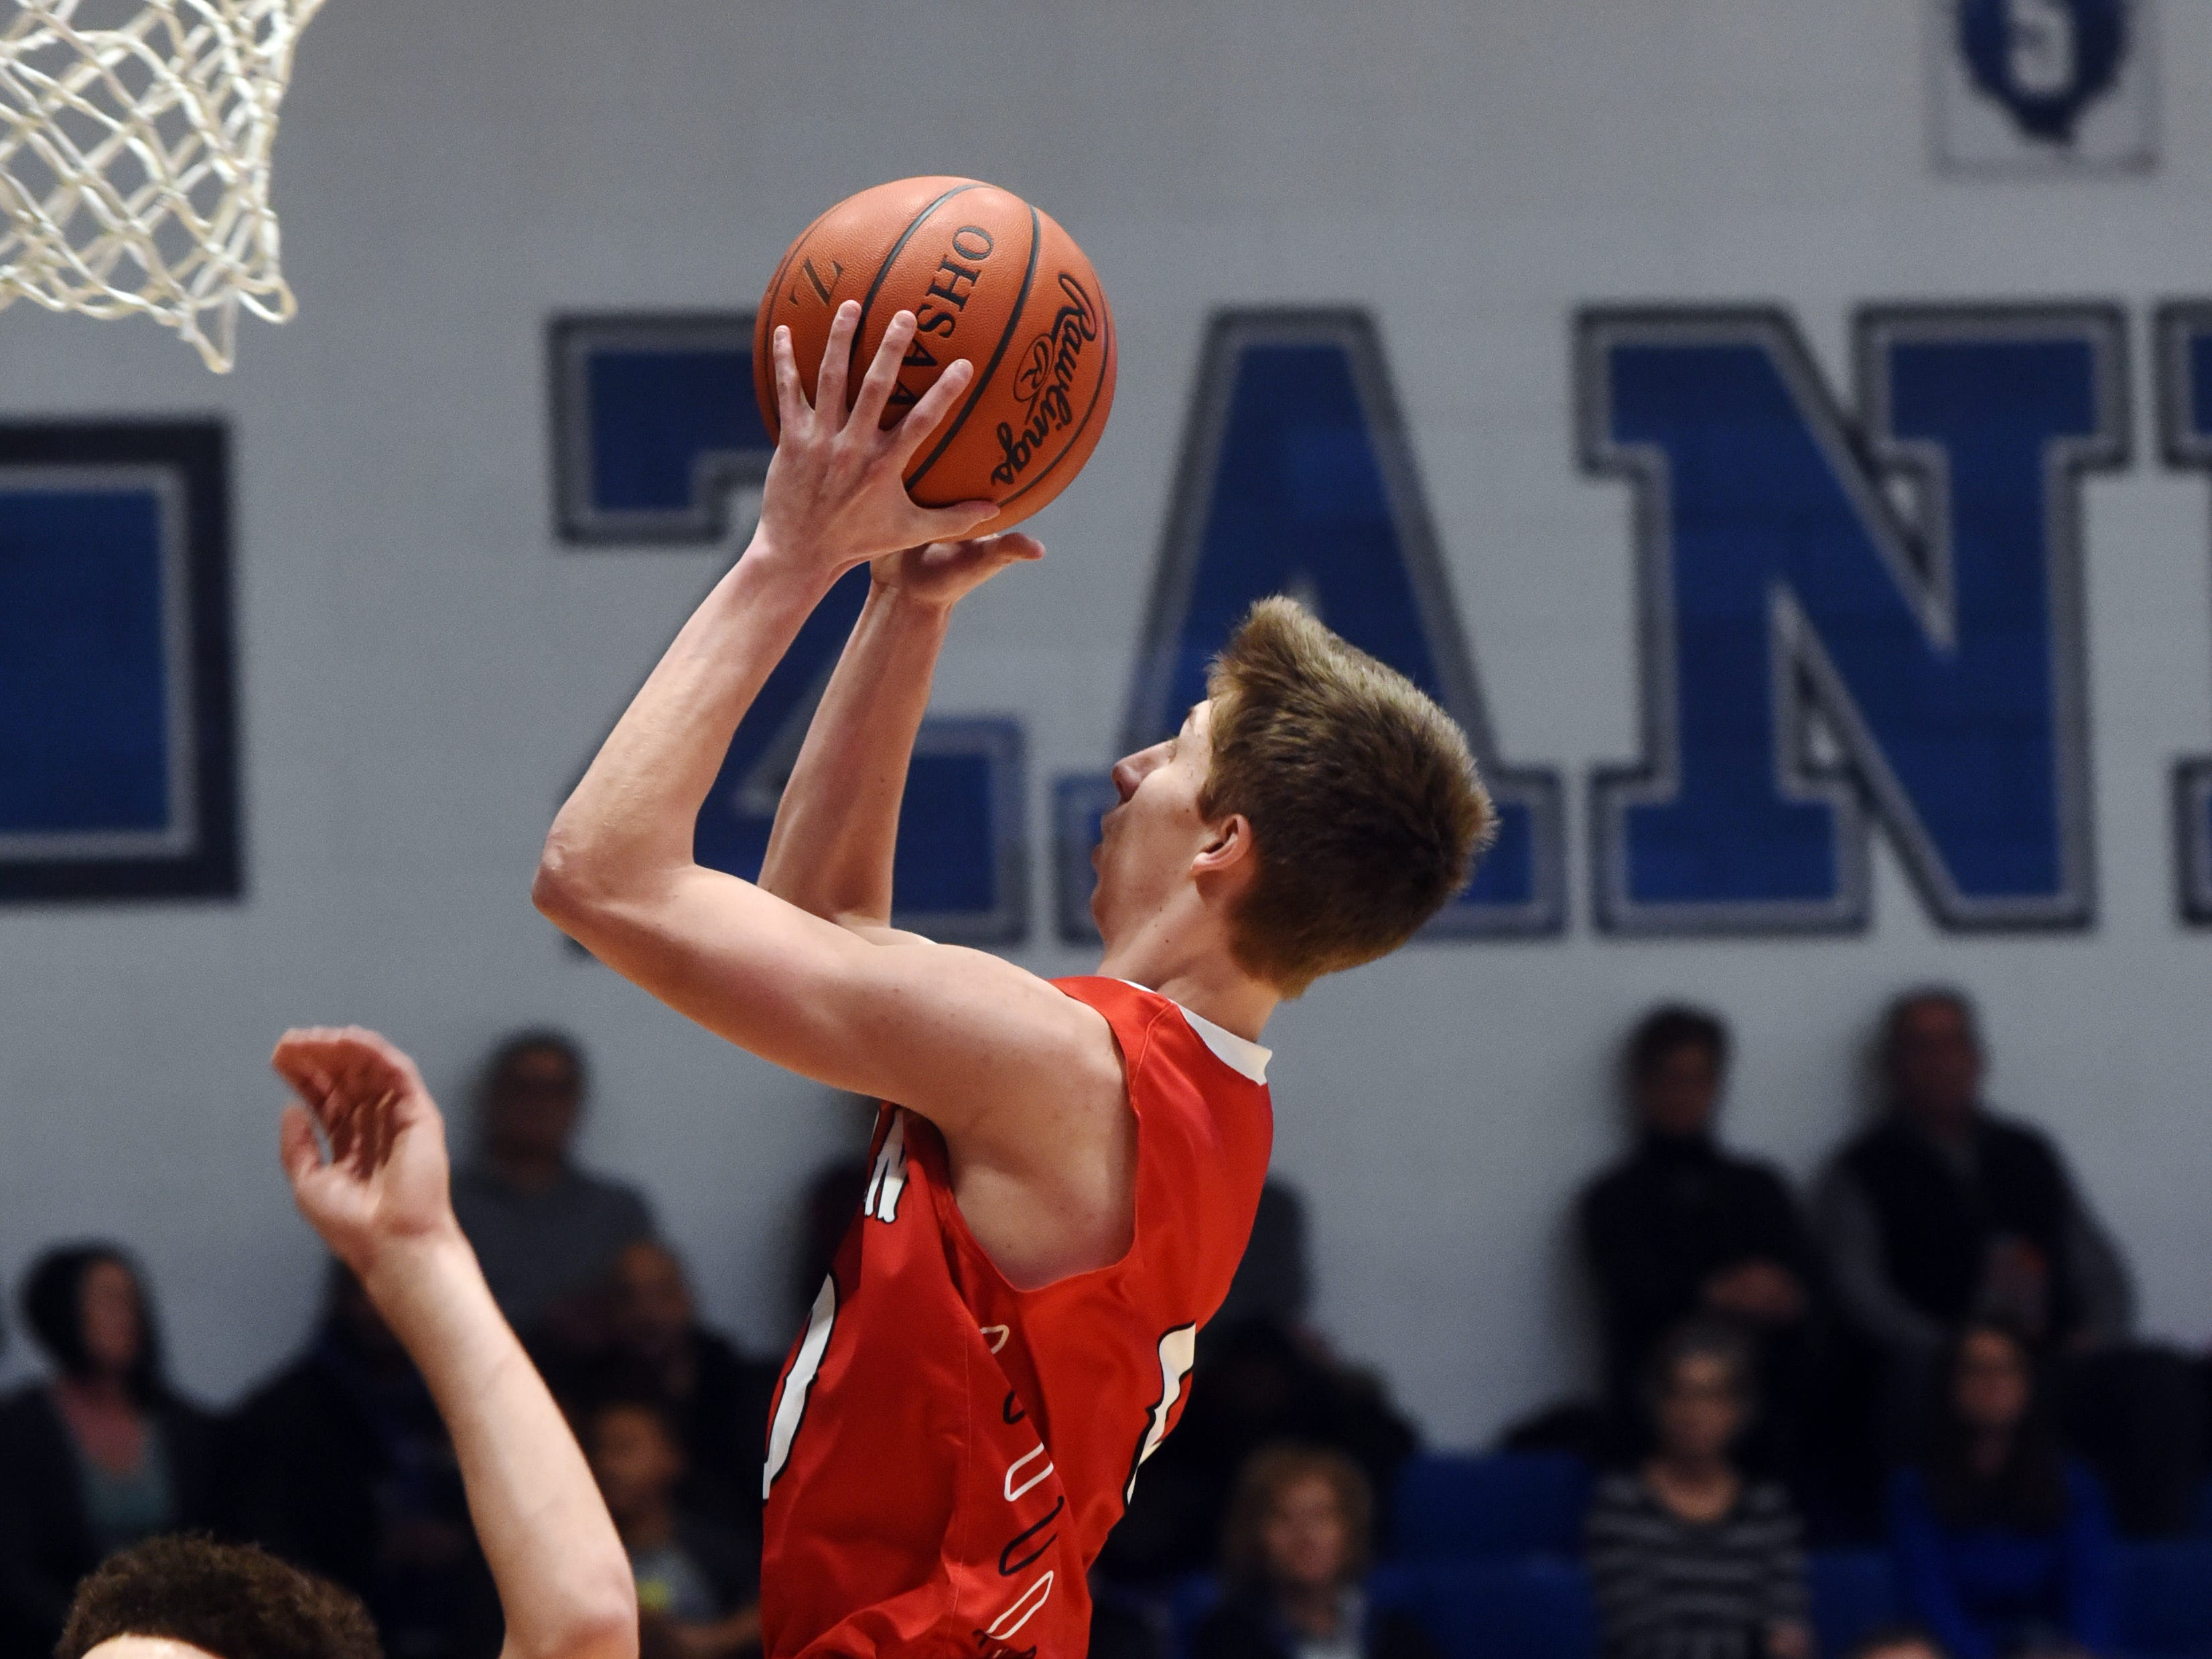 Coshocton's Gaven Williams goes up in the lane against Zanesville.